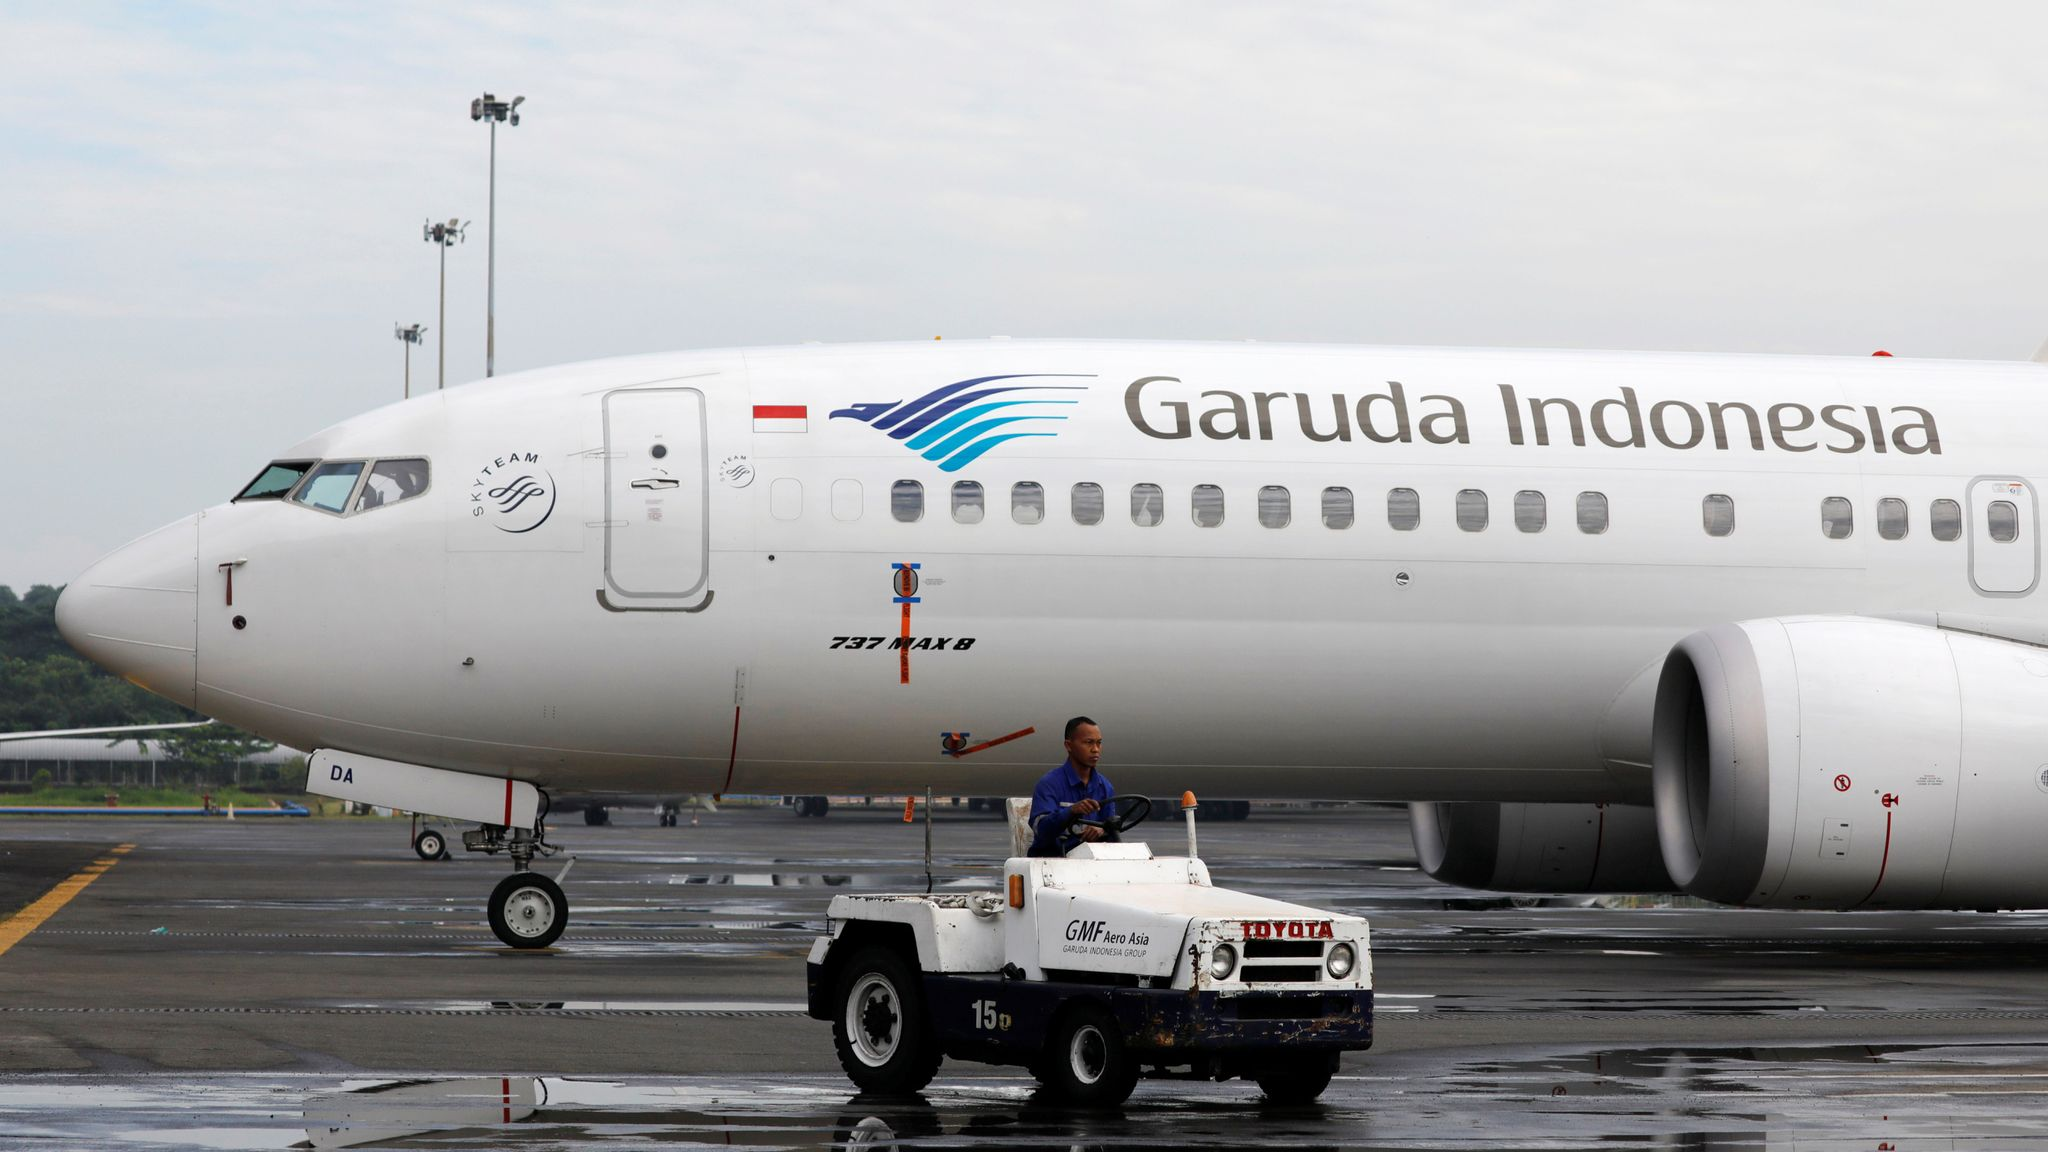 Garuda Indonesia Scraps Order For 49 Boeing 737 Max 8 Jets After Crashes World News Sky News